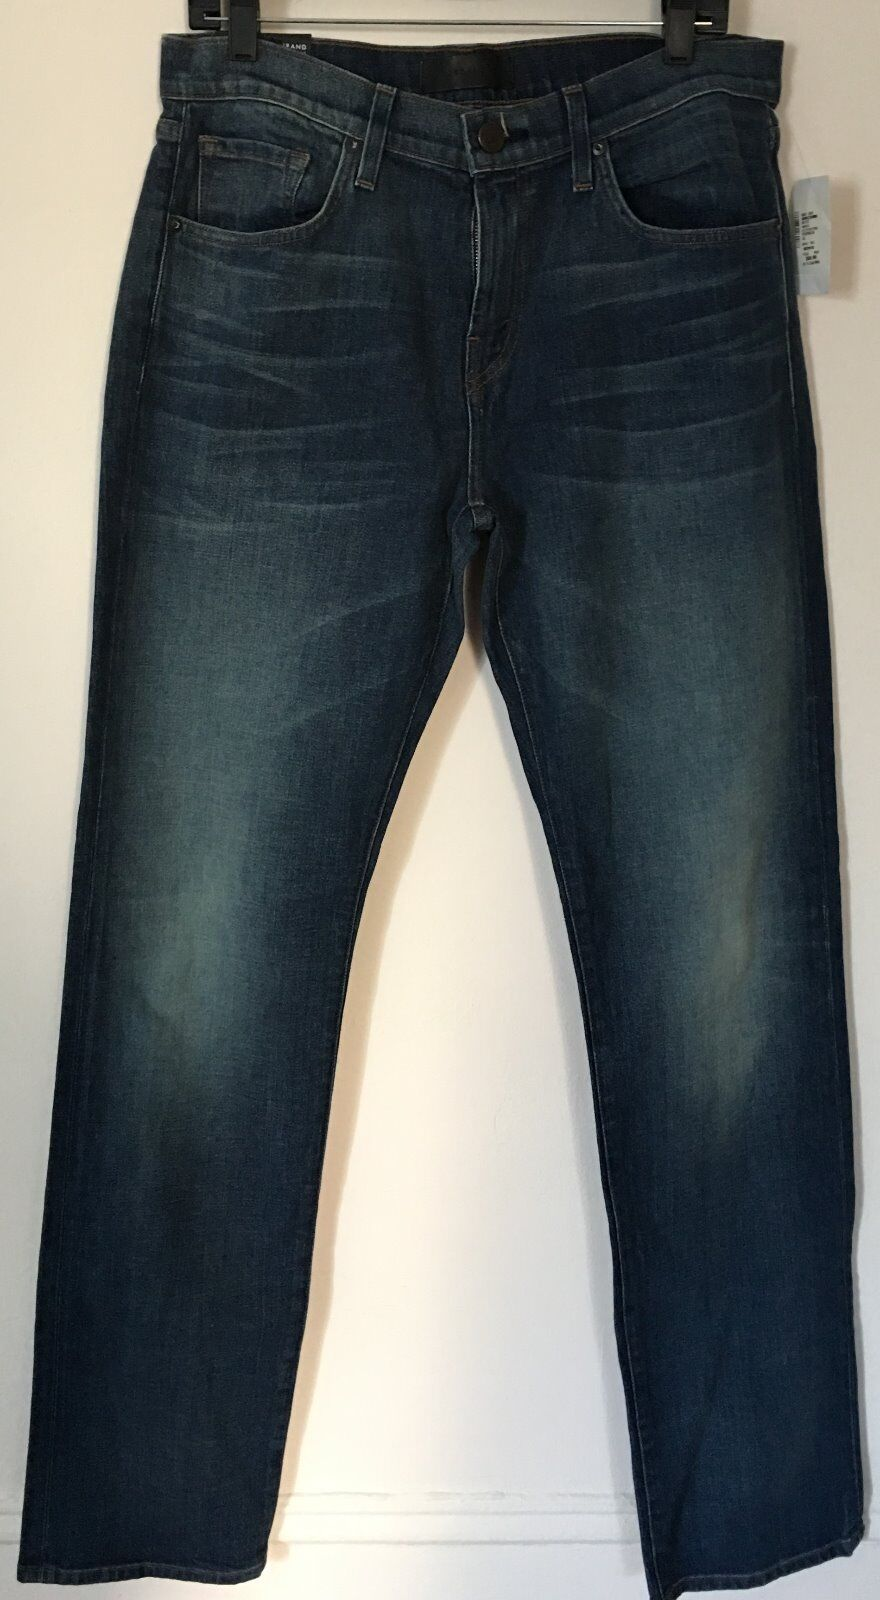 J Brand New Mens Jeans Cole Relaxed Straight Leg Dark bluee Wash Sz 32 x 34